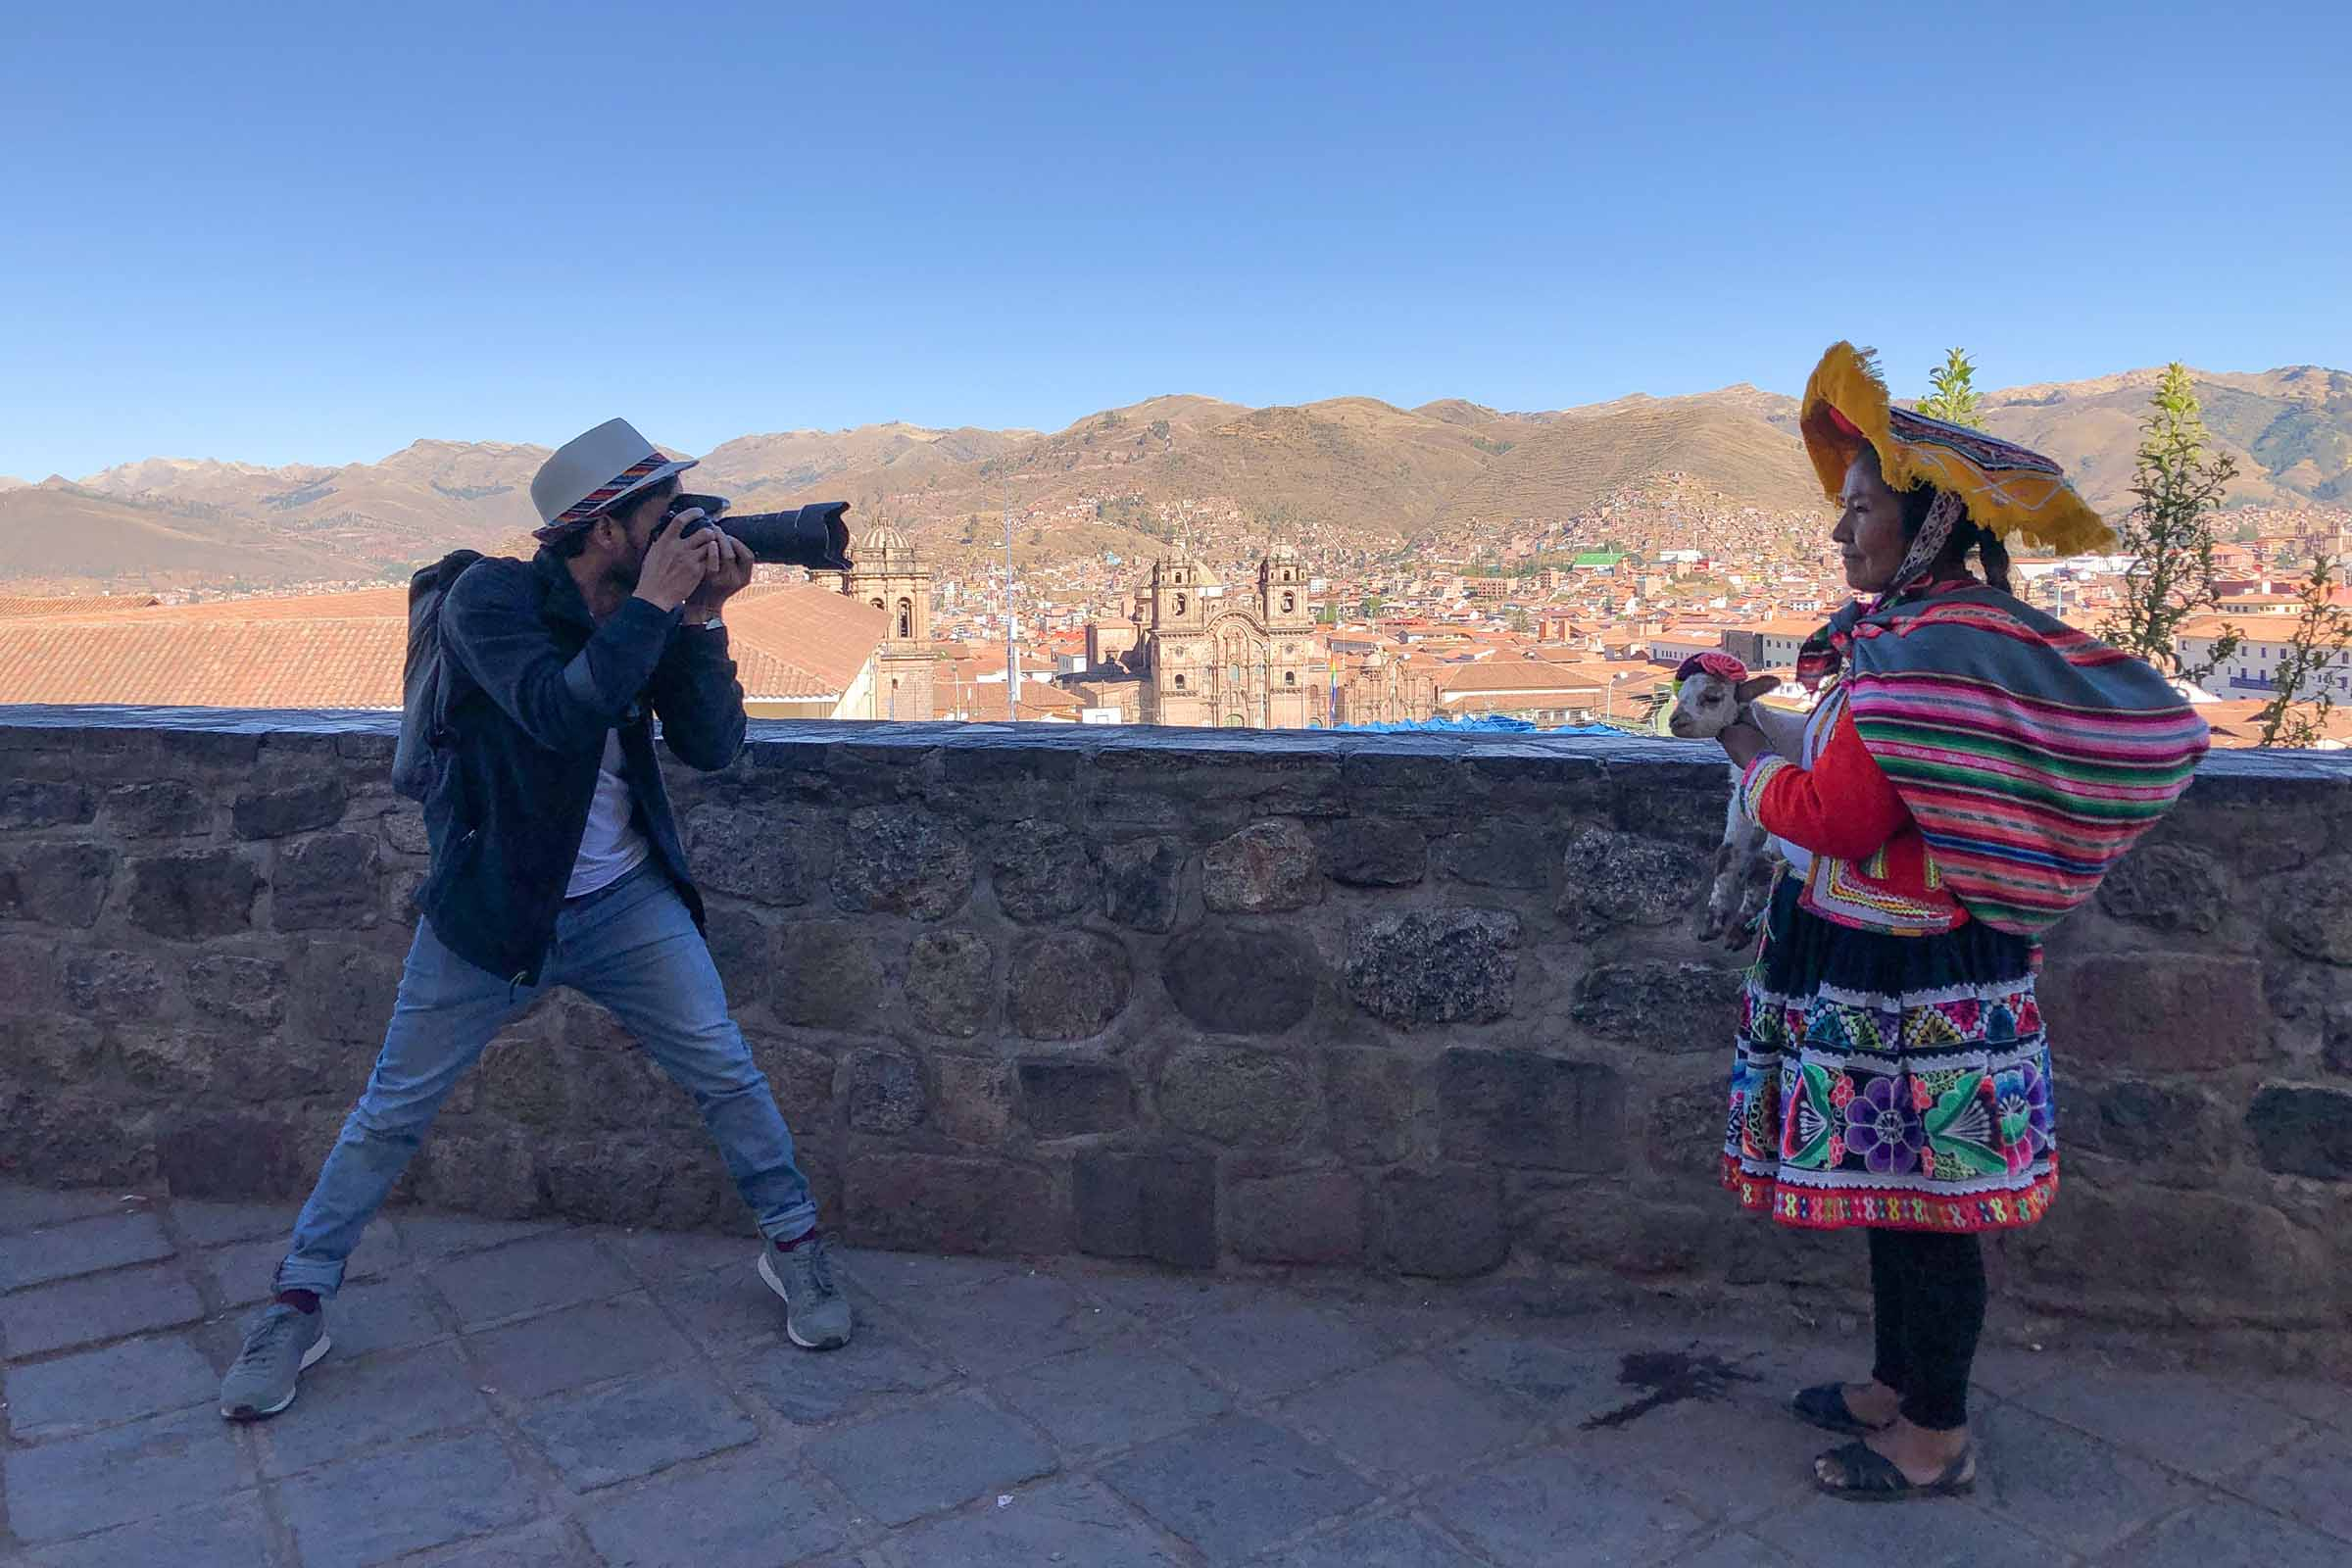 jimmy-nelson-foundation-peru-quechua-behind-the-scenes-gallery-7